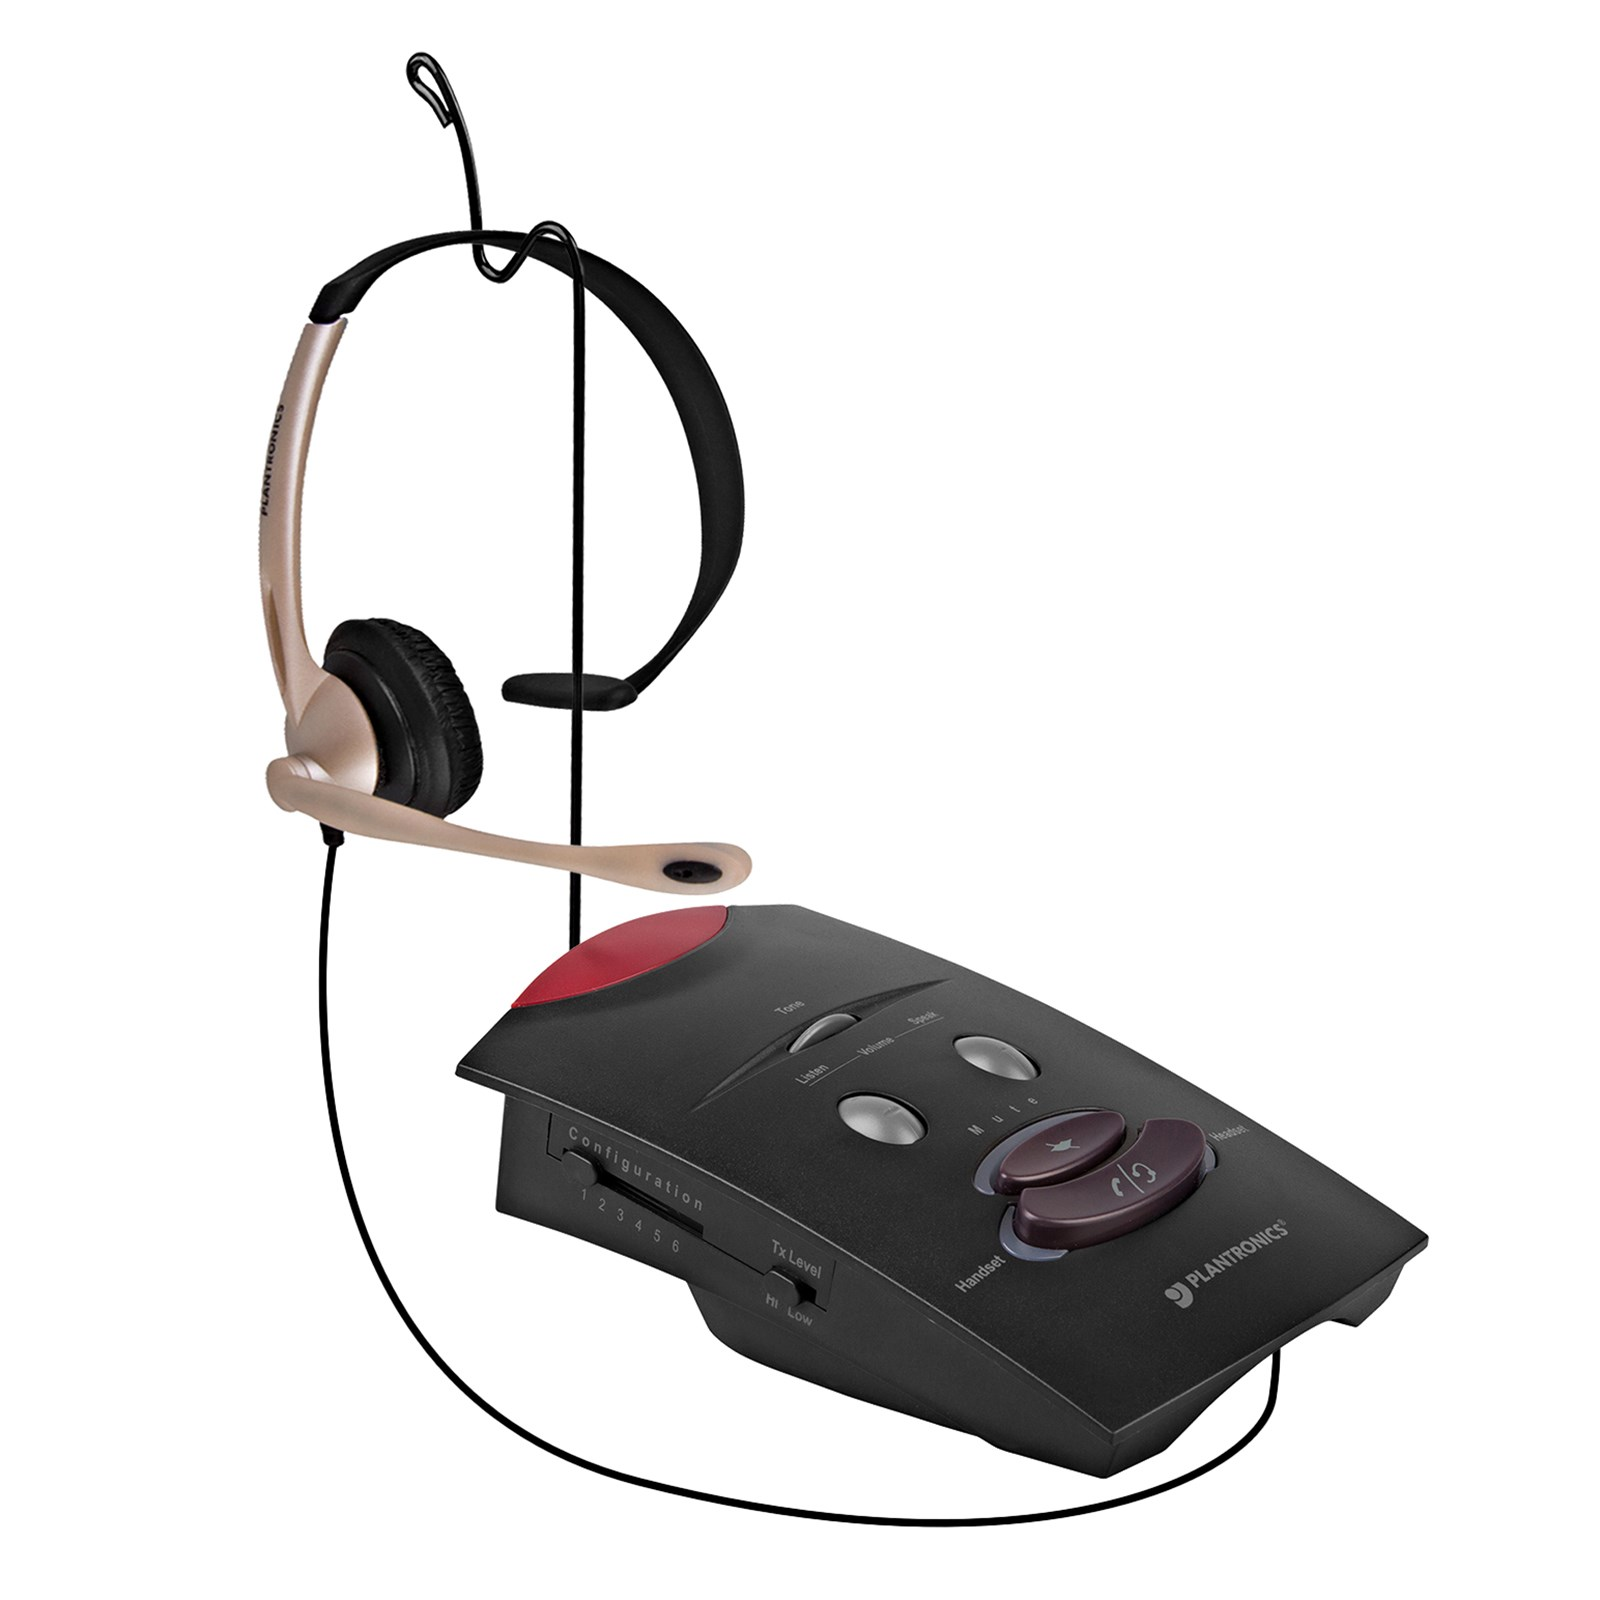 Plantronics S11 Wired Telephone Headset System (Black) PLA-S11-BK-B1